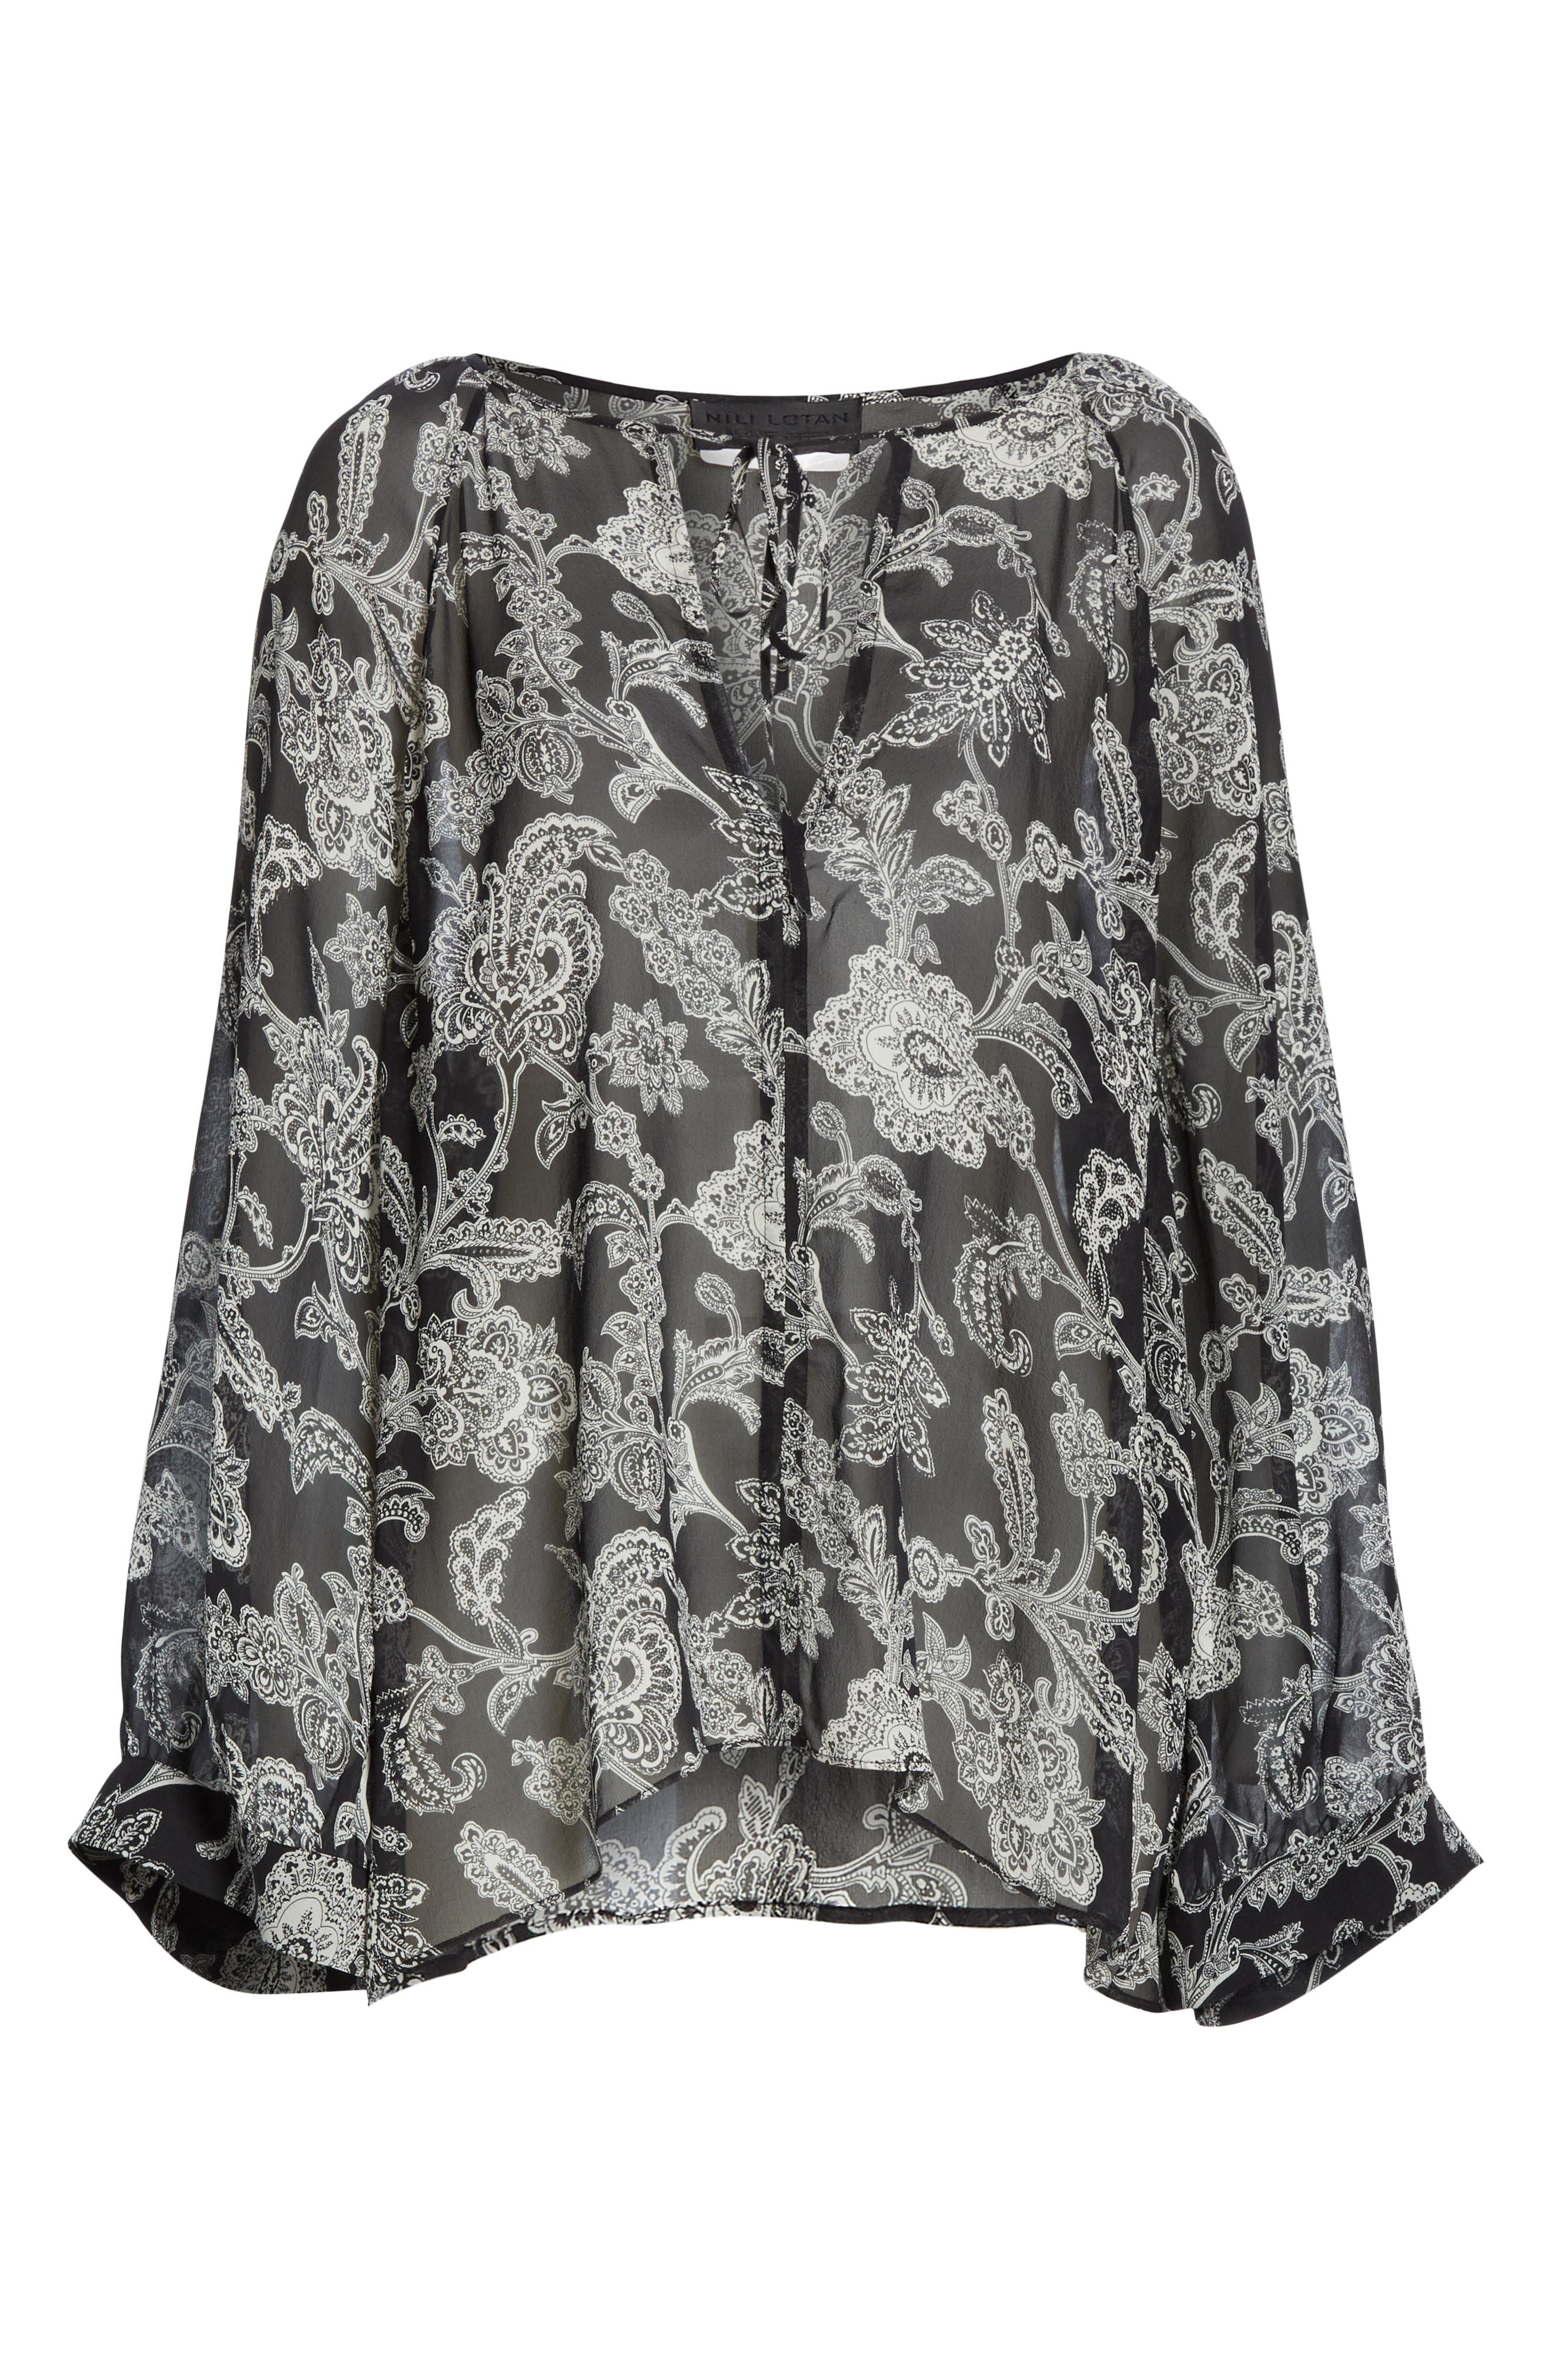 NILI LOTAN, Acadia Leopard Print Silk Blouse, Alternate thumbnail 6, color, BLACK PAISLEY